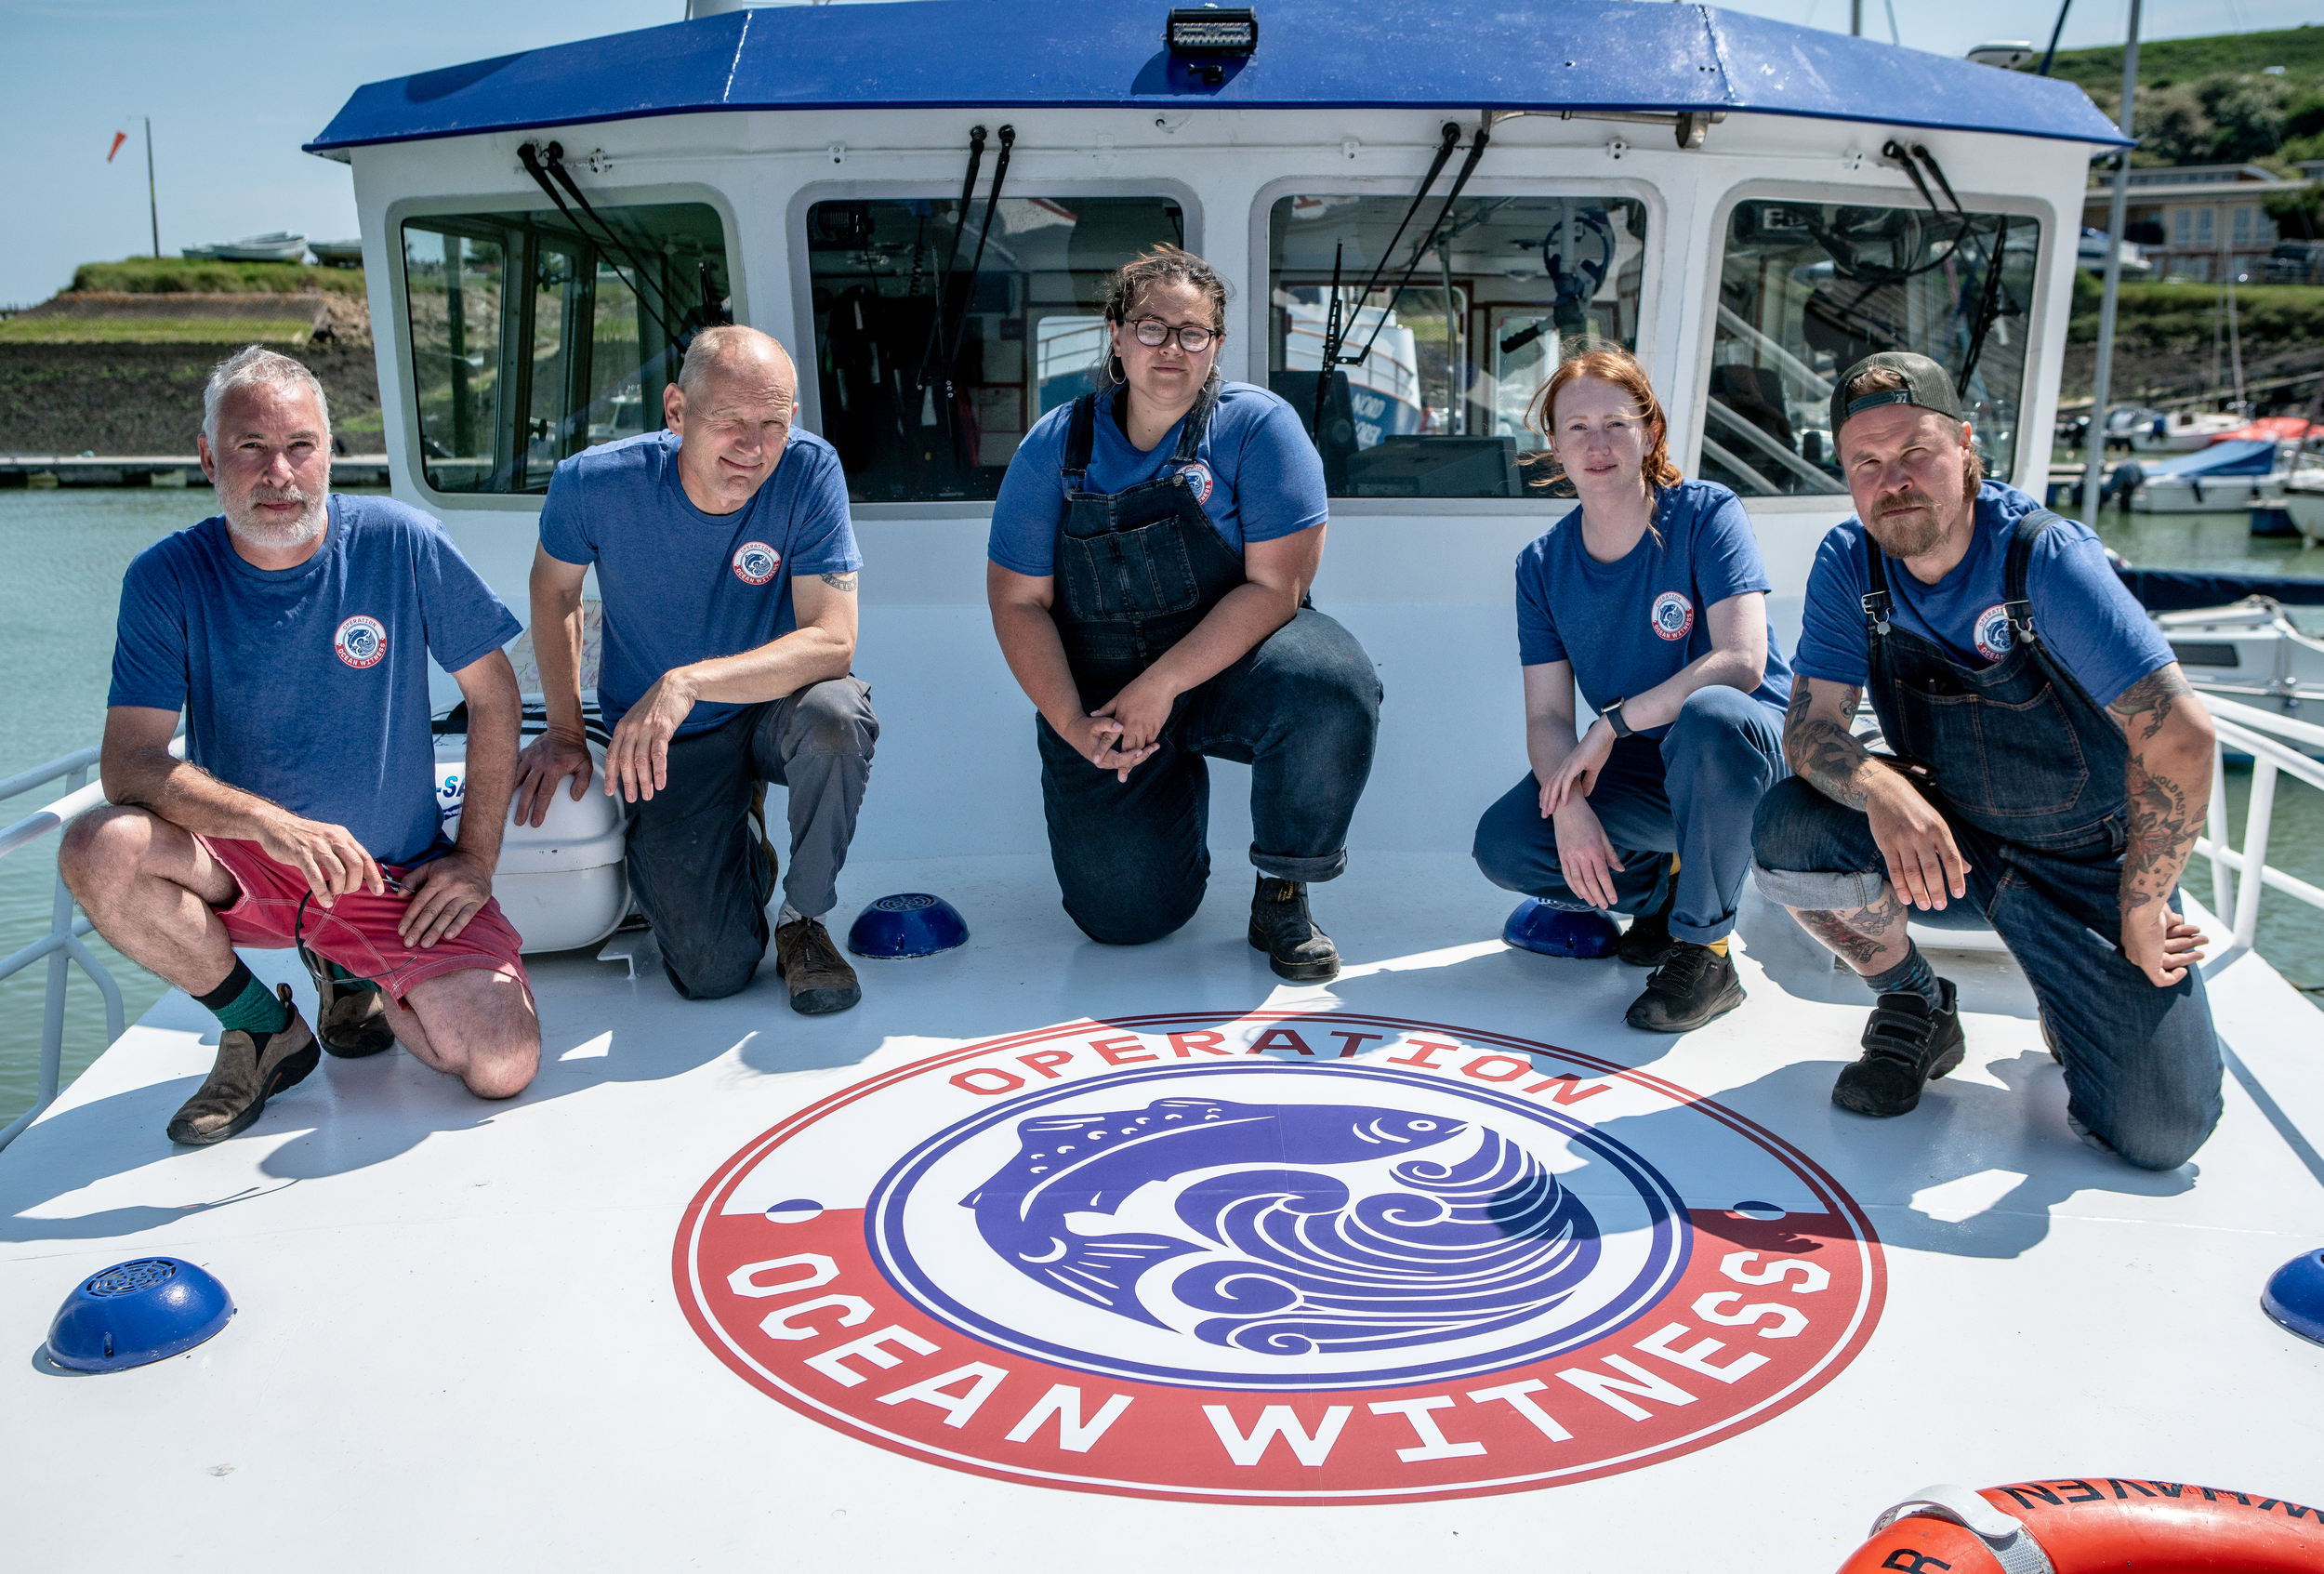 Five crew members kneel on the deck of a small ship in front of a large decal showing the Operation Ocean Witness logo.